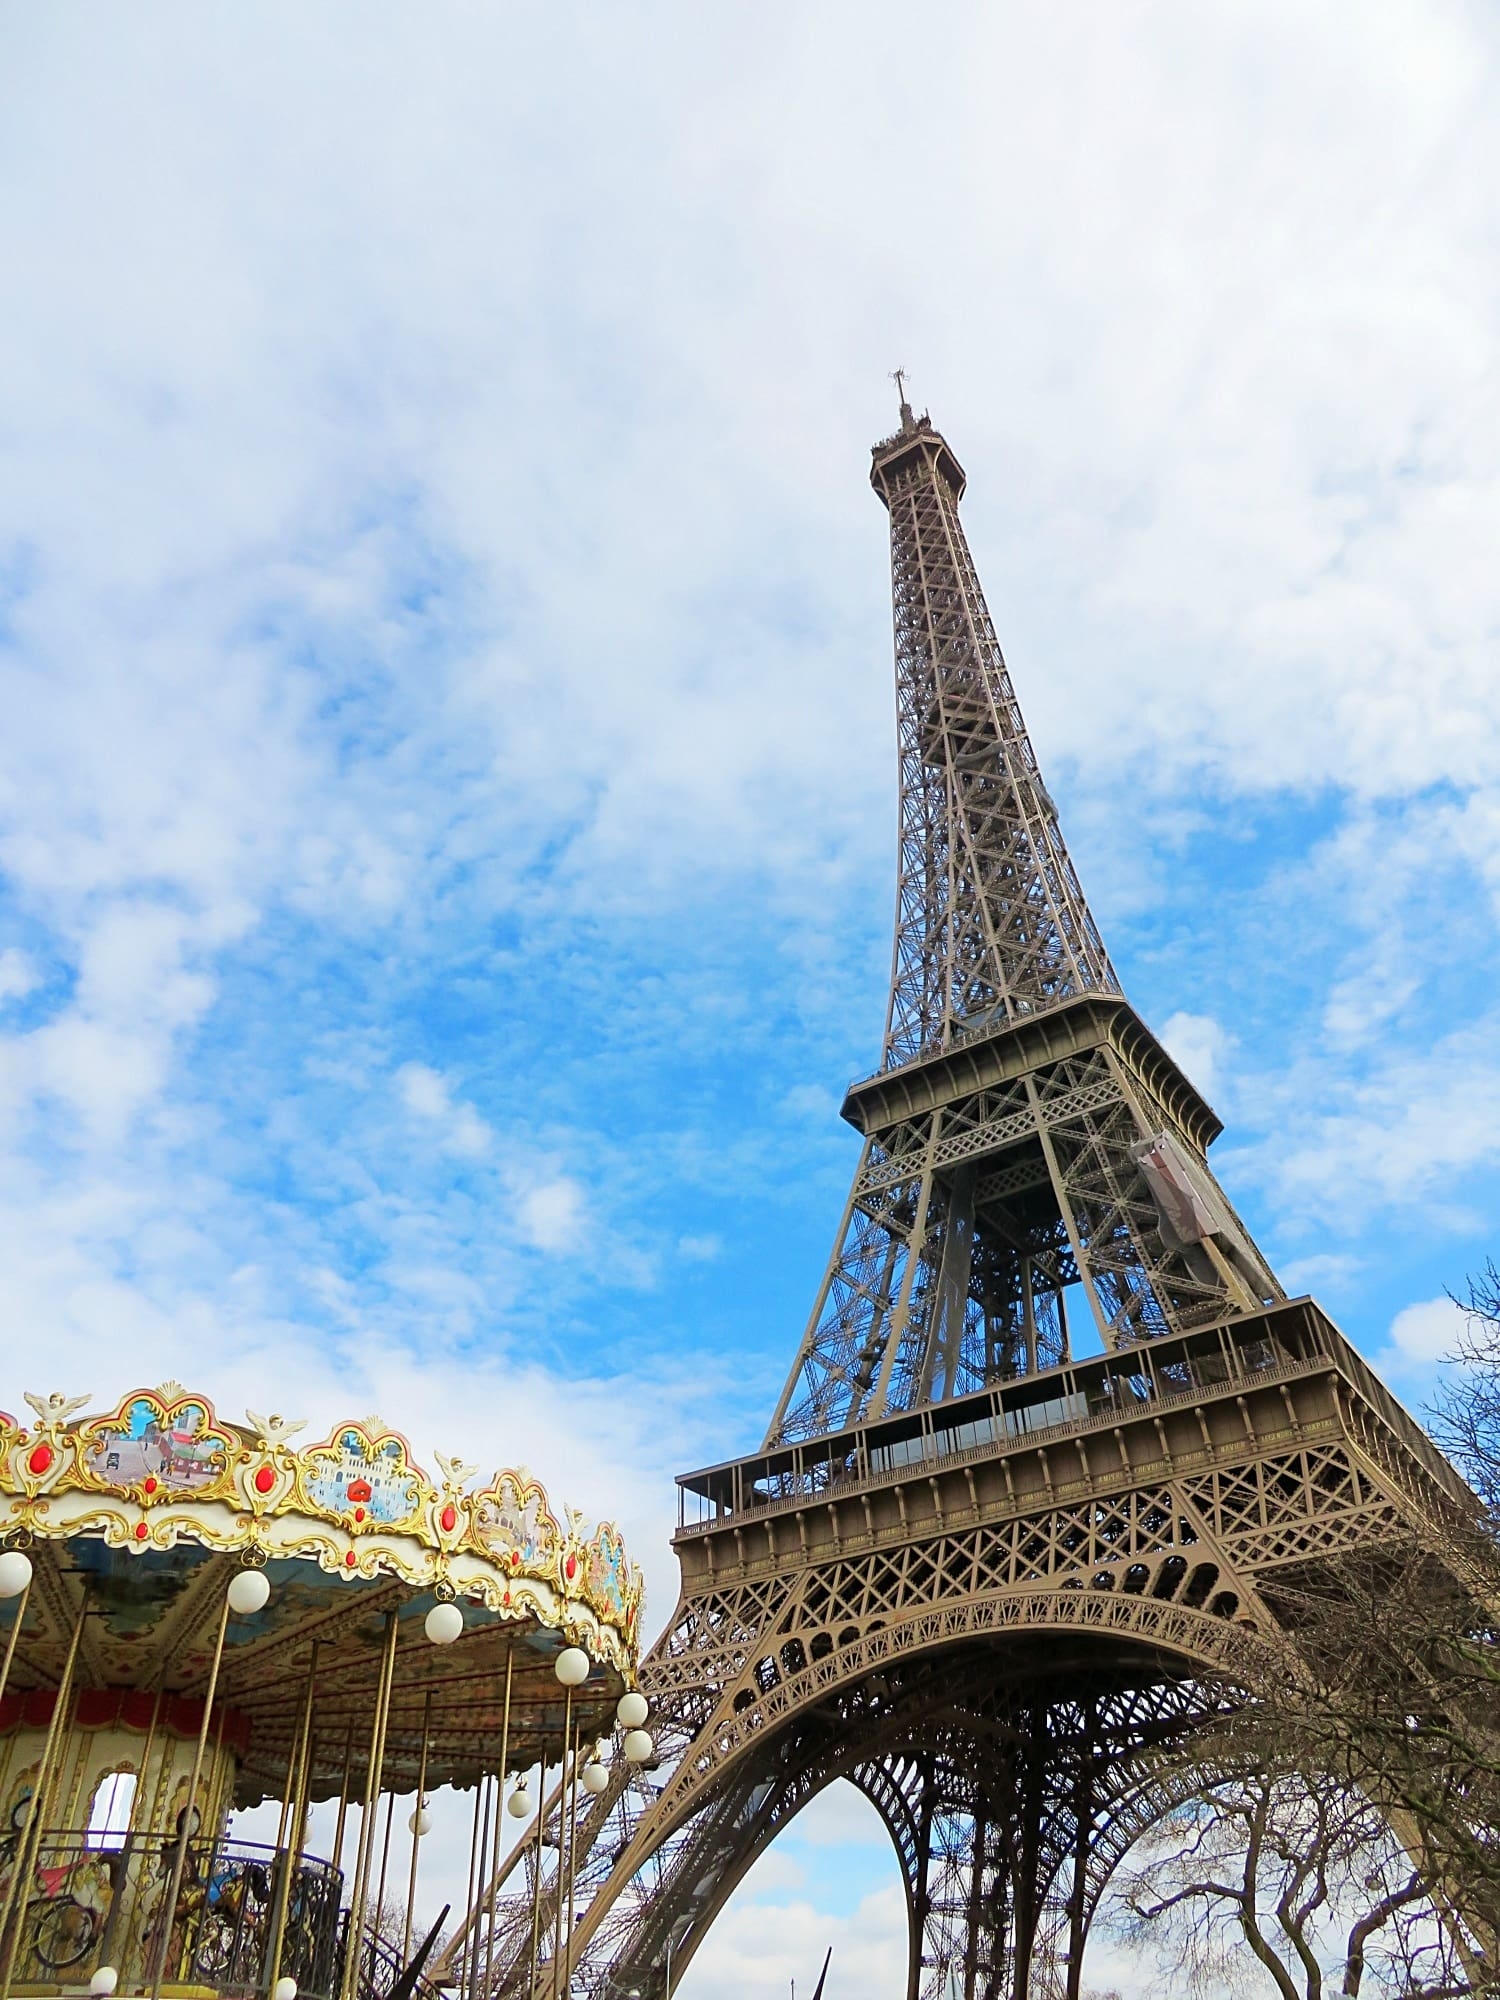 Eiffel Tower and carousel in Paris with kids